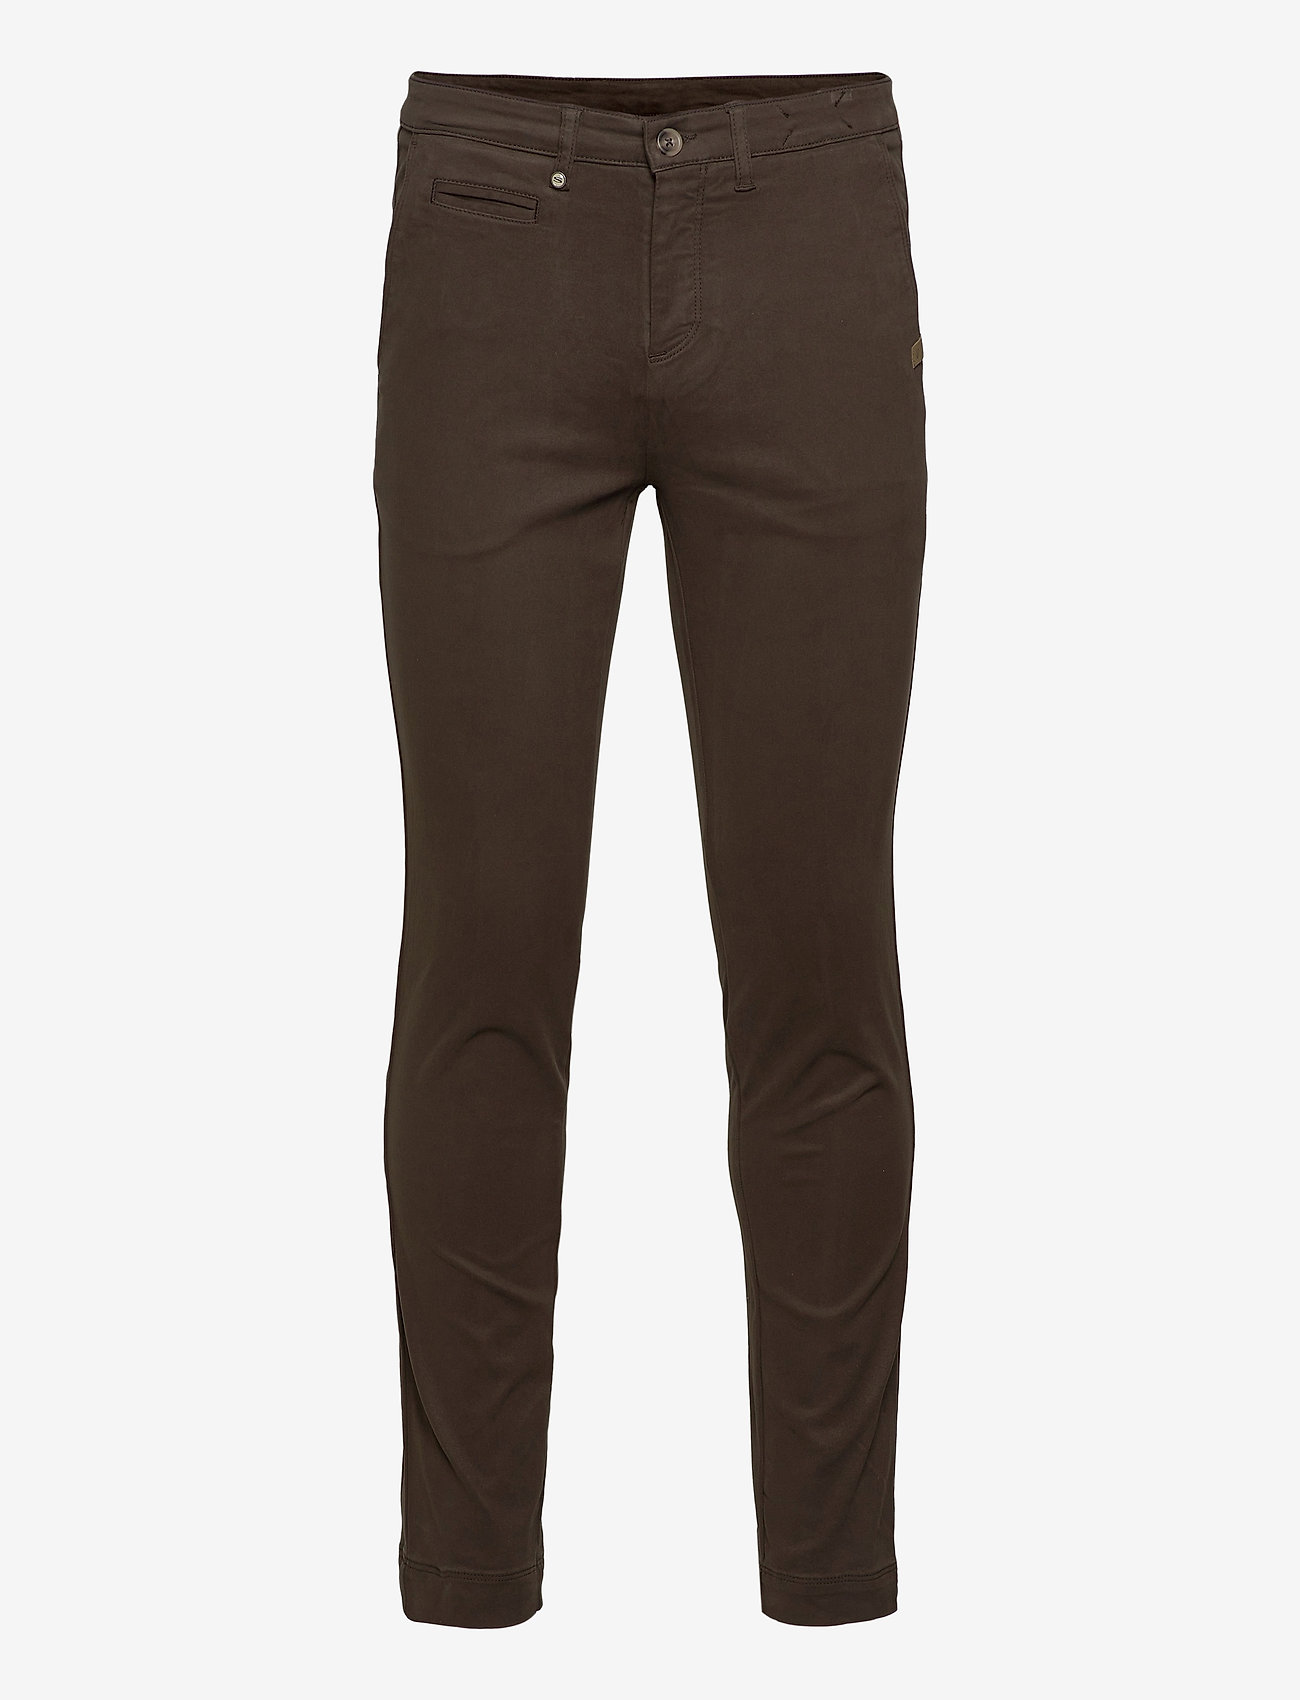 SAND - Suede Touch C - Dilan - chinos - olive/khaki - 0